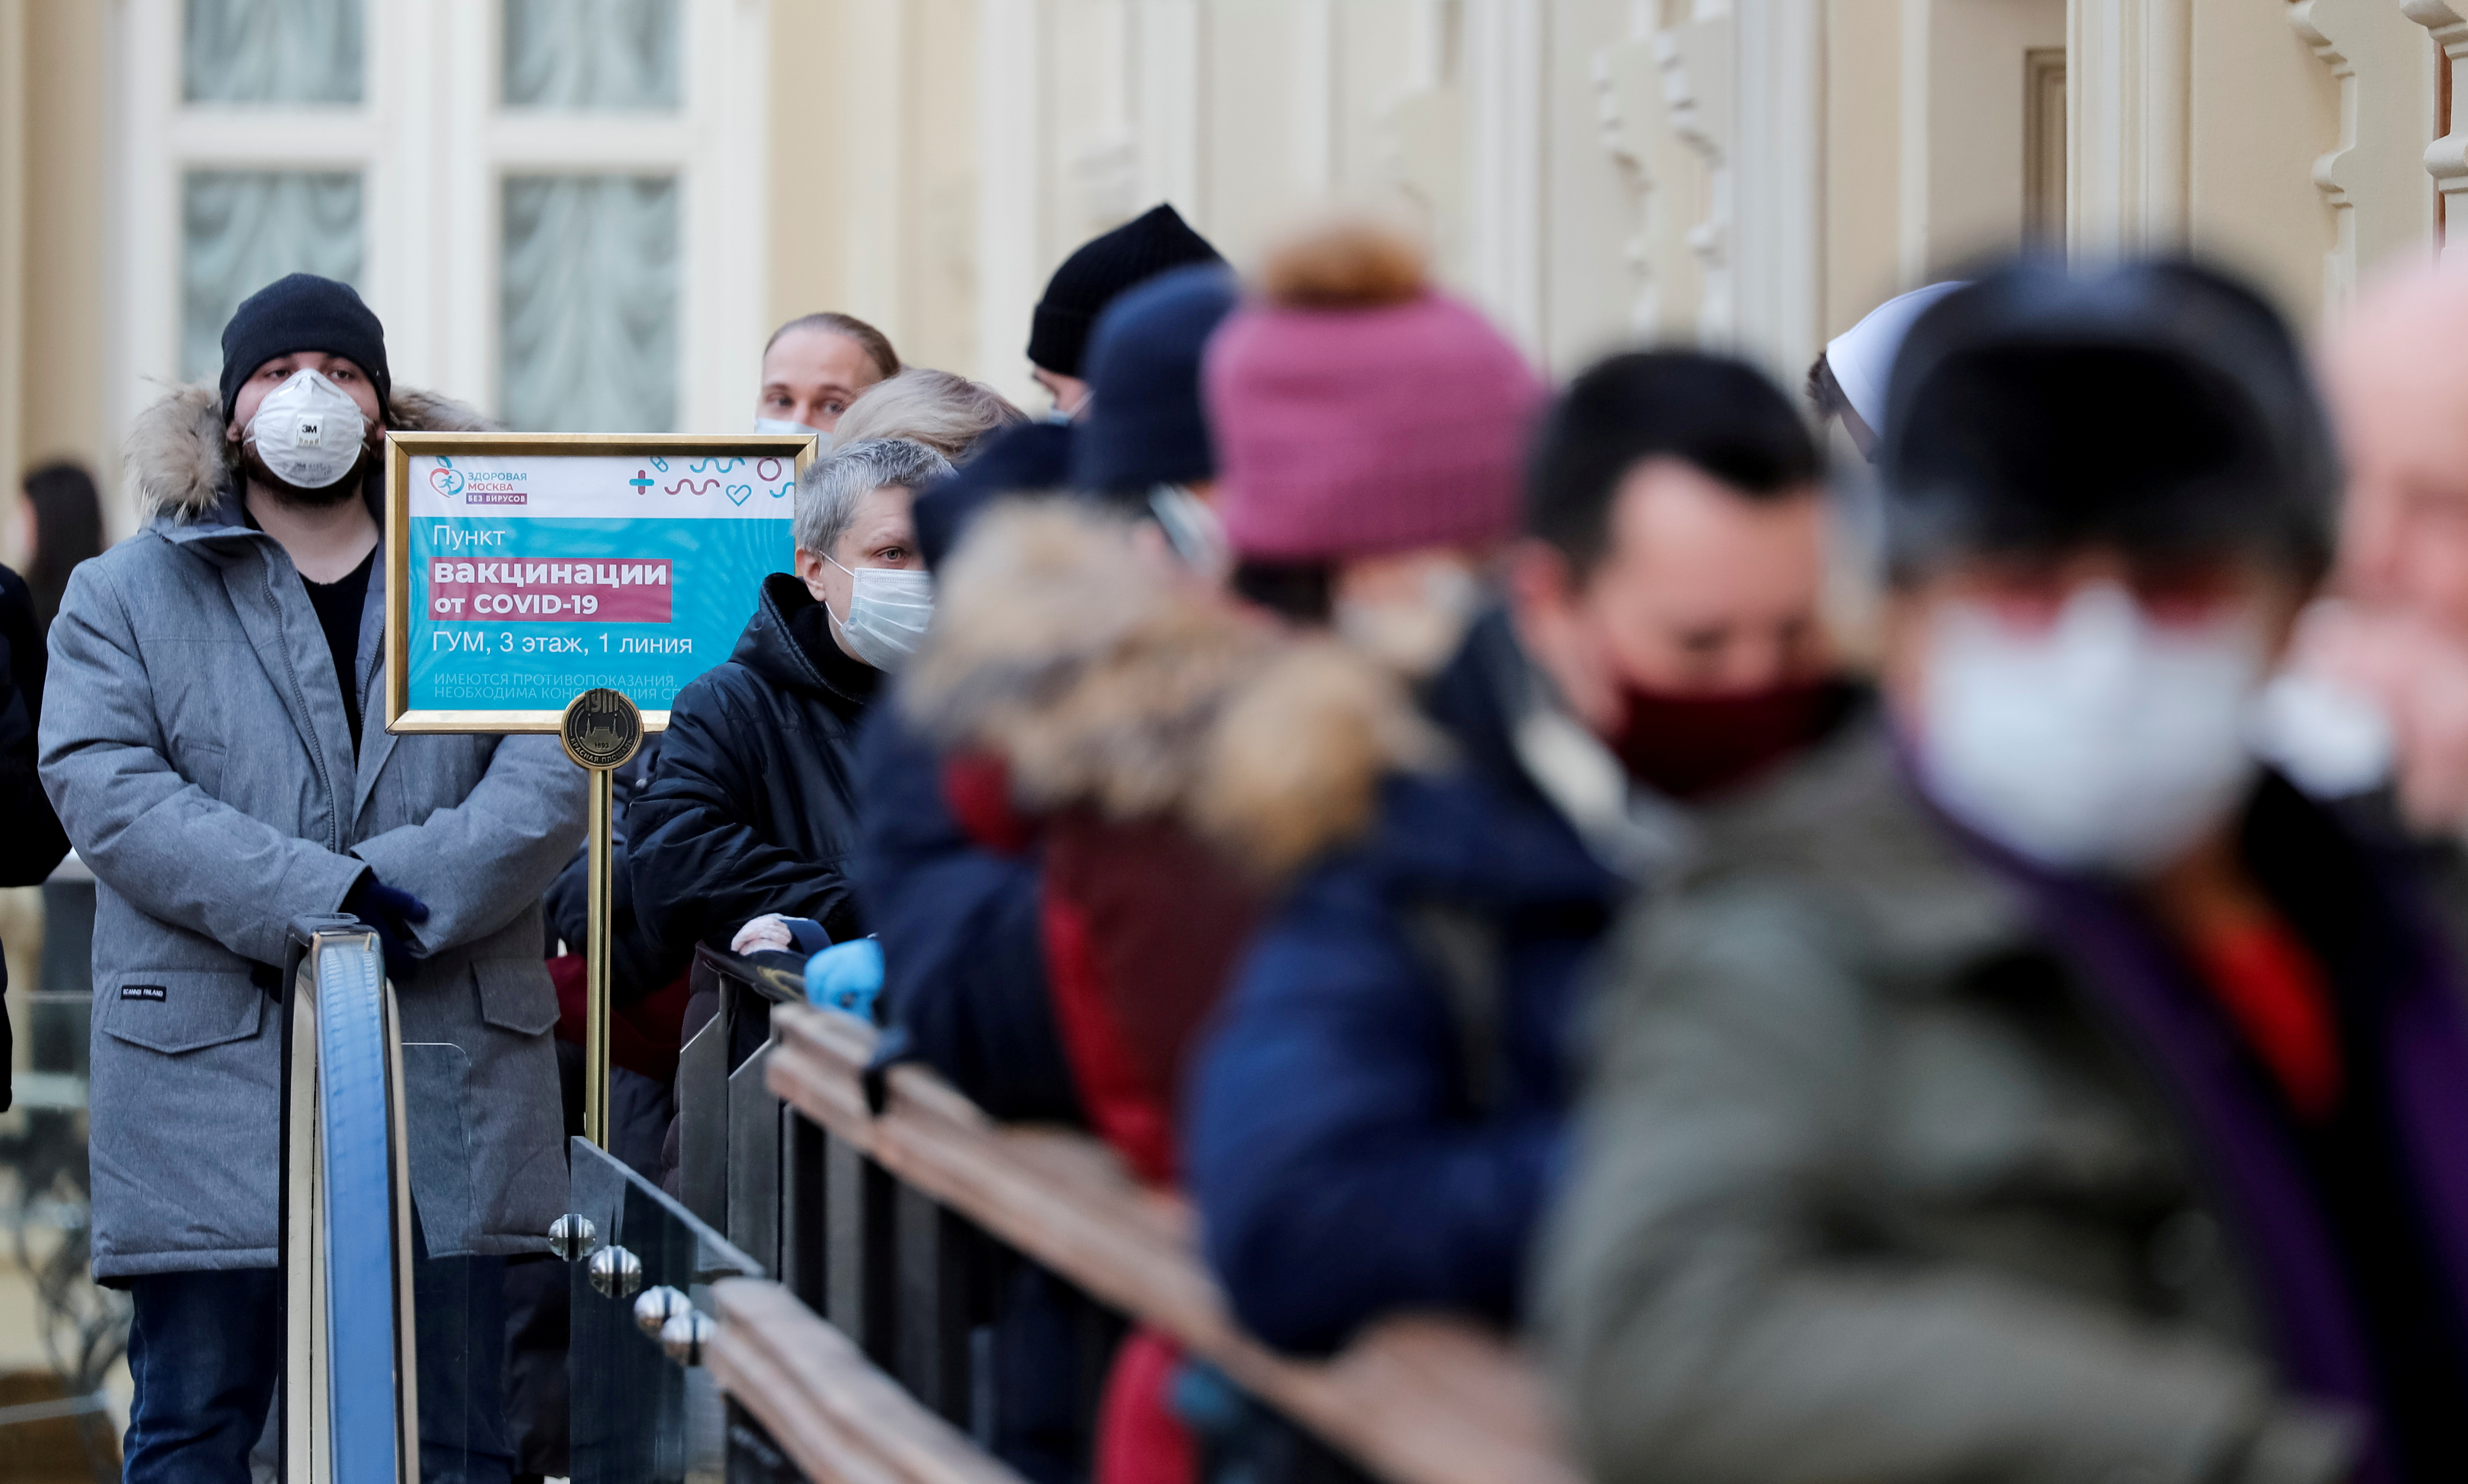 Peoplelineup to receive a dose of Sputnik V (Gam-COVID-Vac) vaccine against the coronavirus disease (COVID-19) at a vaccination centre in the State Department Store, GUM, in central Moscow, Russia January 18, 2021. REUTERS/Shamil Zhumatov